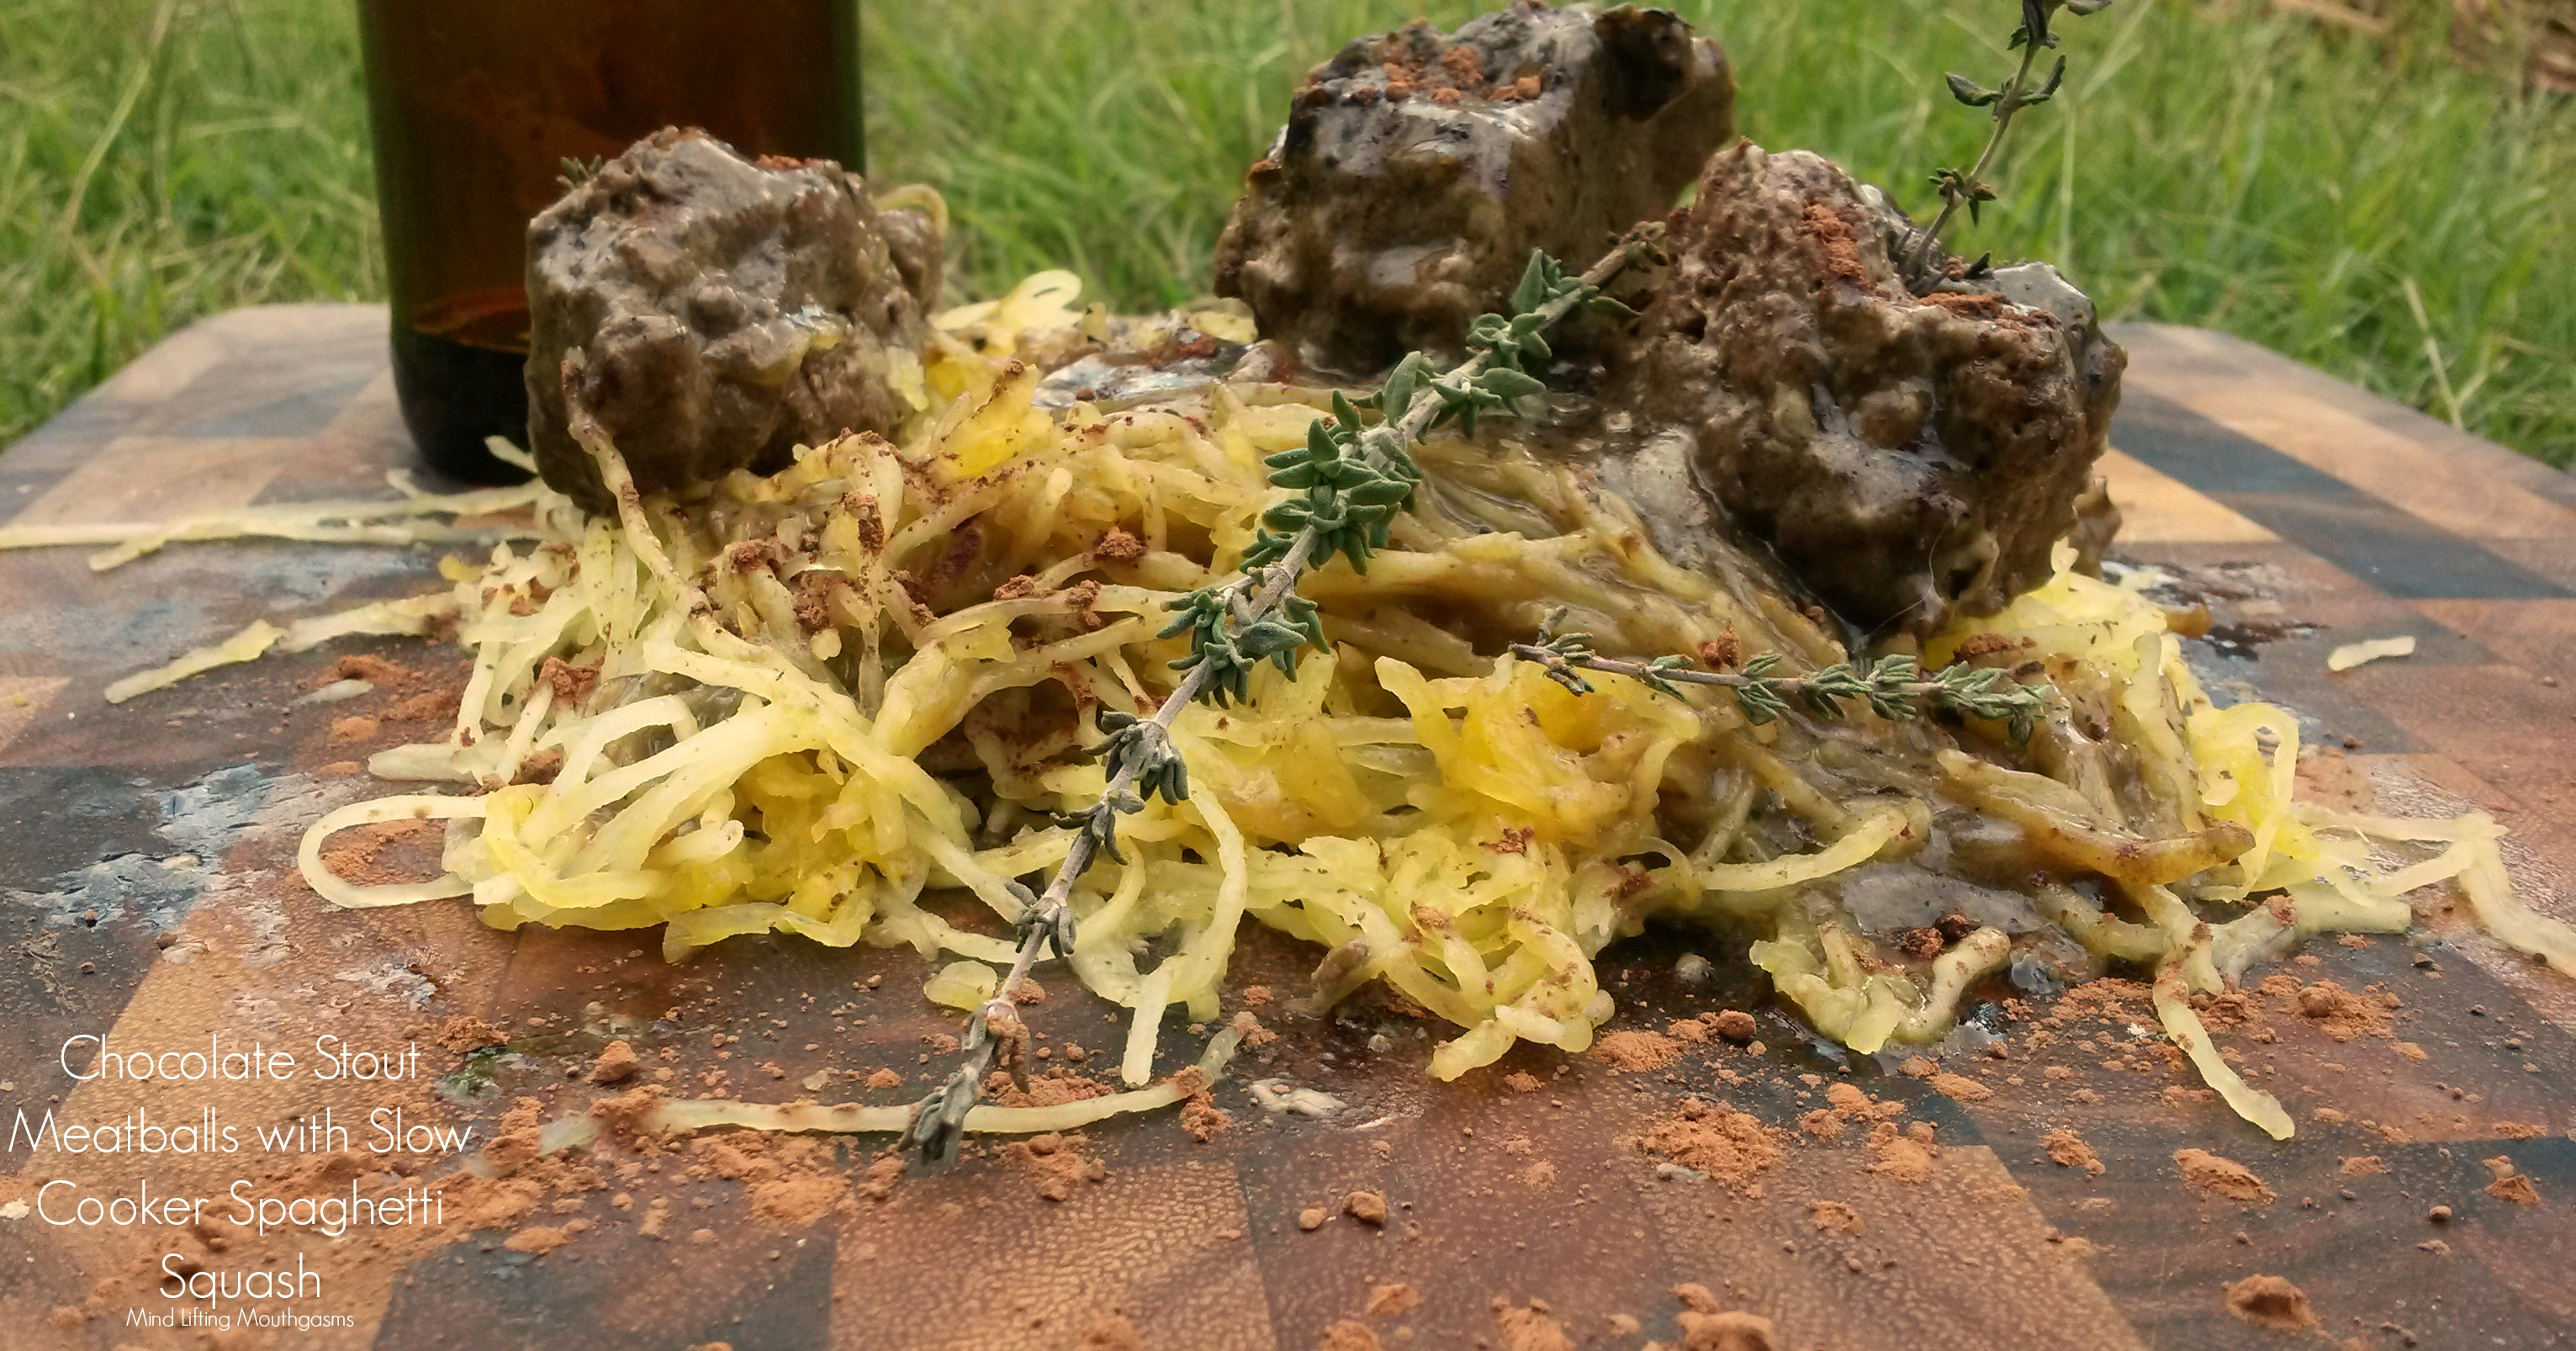 Chocolate Stout Meatballs with Slow Cooker Spaghetti Squash.jpg